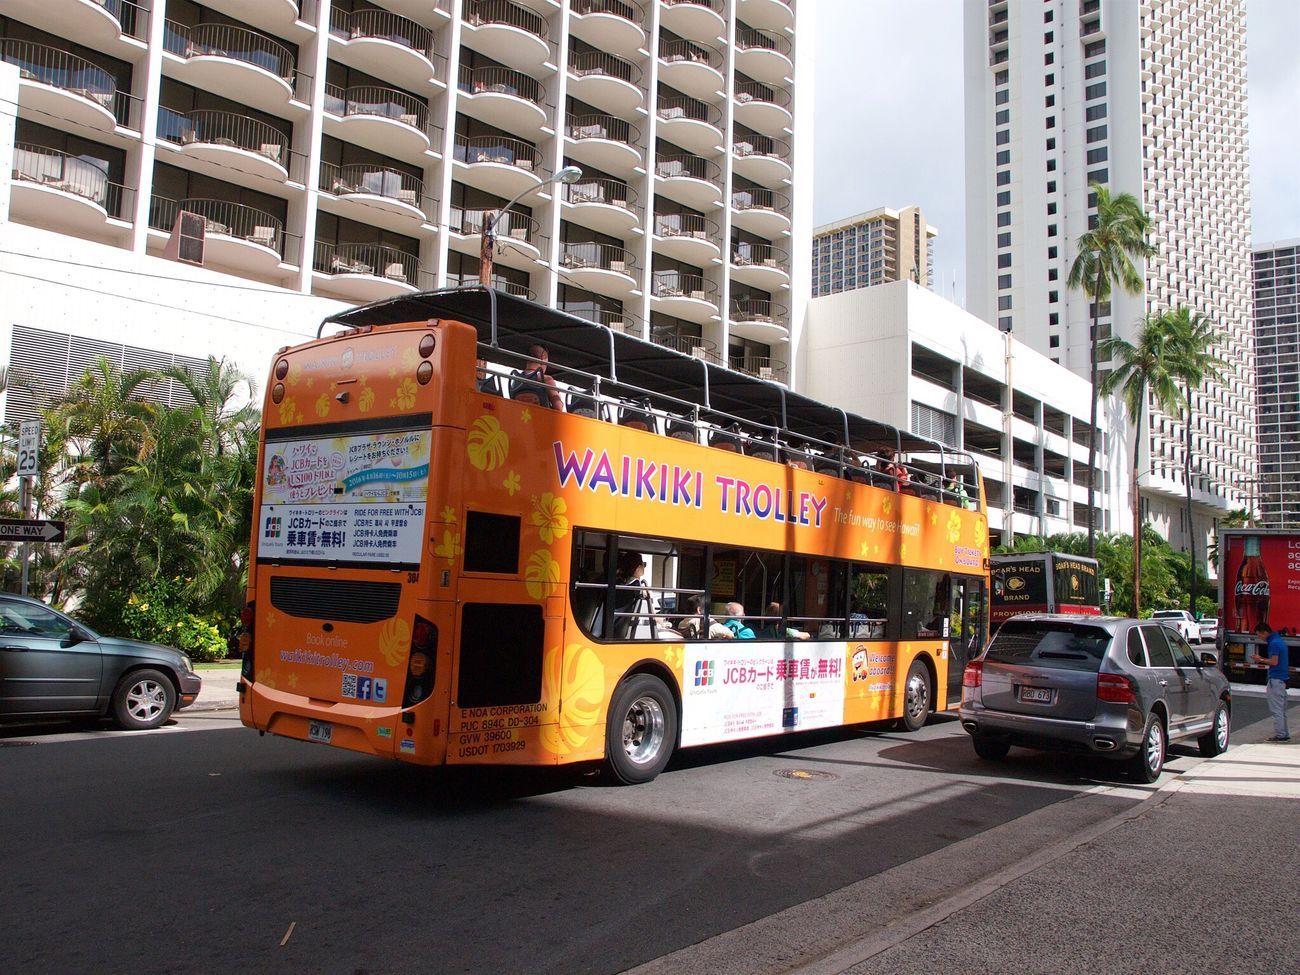 City Building Exterior Architecture Street Land Vehicle Transportation City Life Outdoors Built Structure Fire Engine Day No People Hawaii Trolly Waikiki Tourism Aston